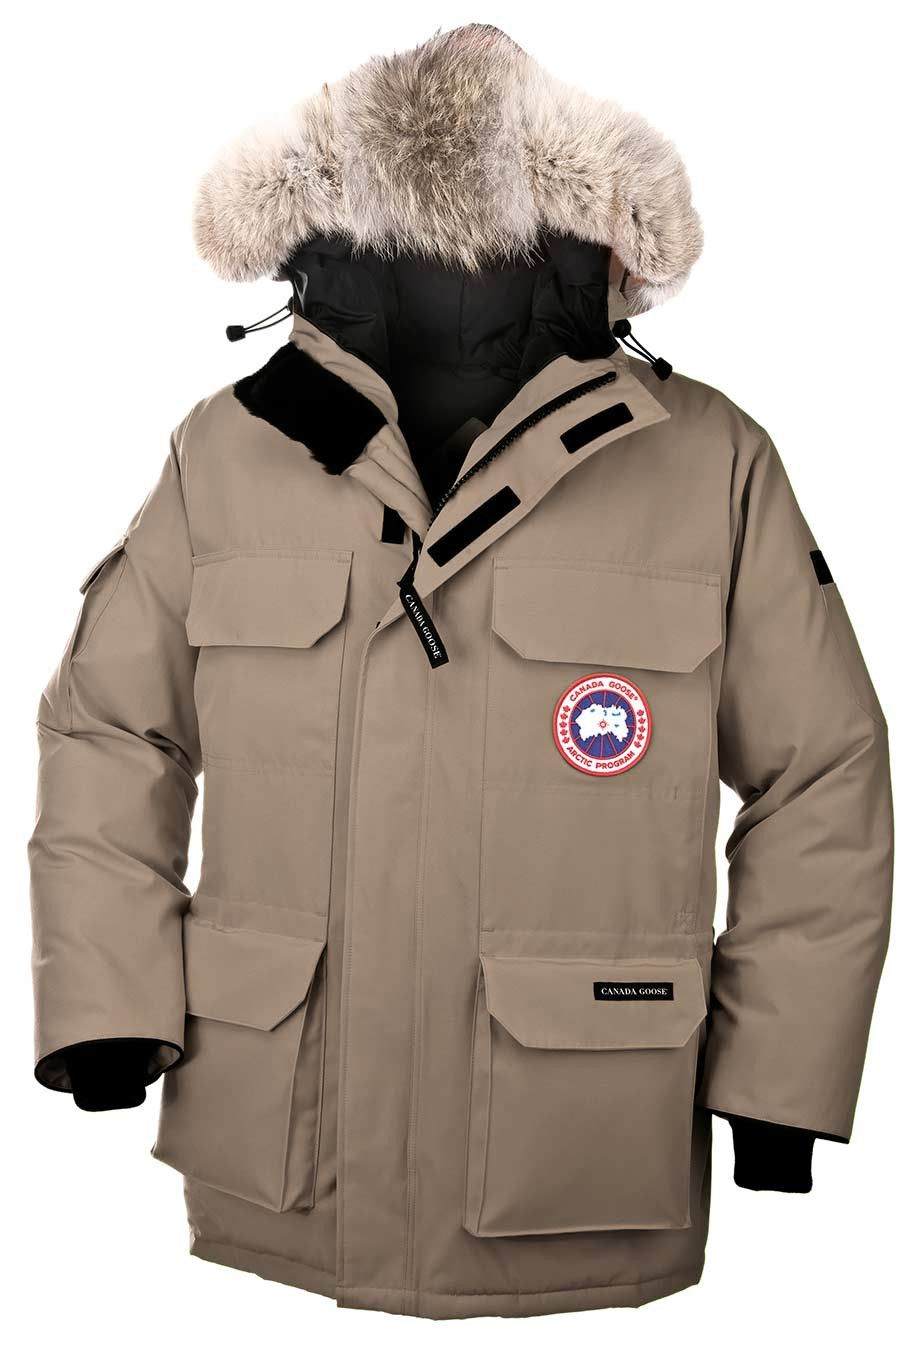 Canada Goose Maend Expedition Parka Tan Billig Canada Goose Jakke Tilbud Canada Goose Saetter En Aere I At S Canada Goose Expedition Parka Fashion How To Wear